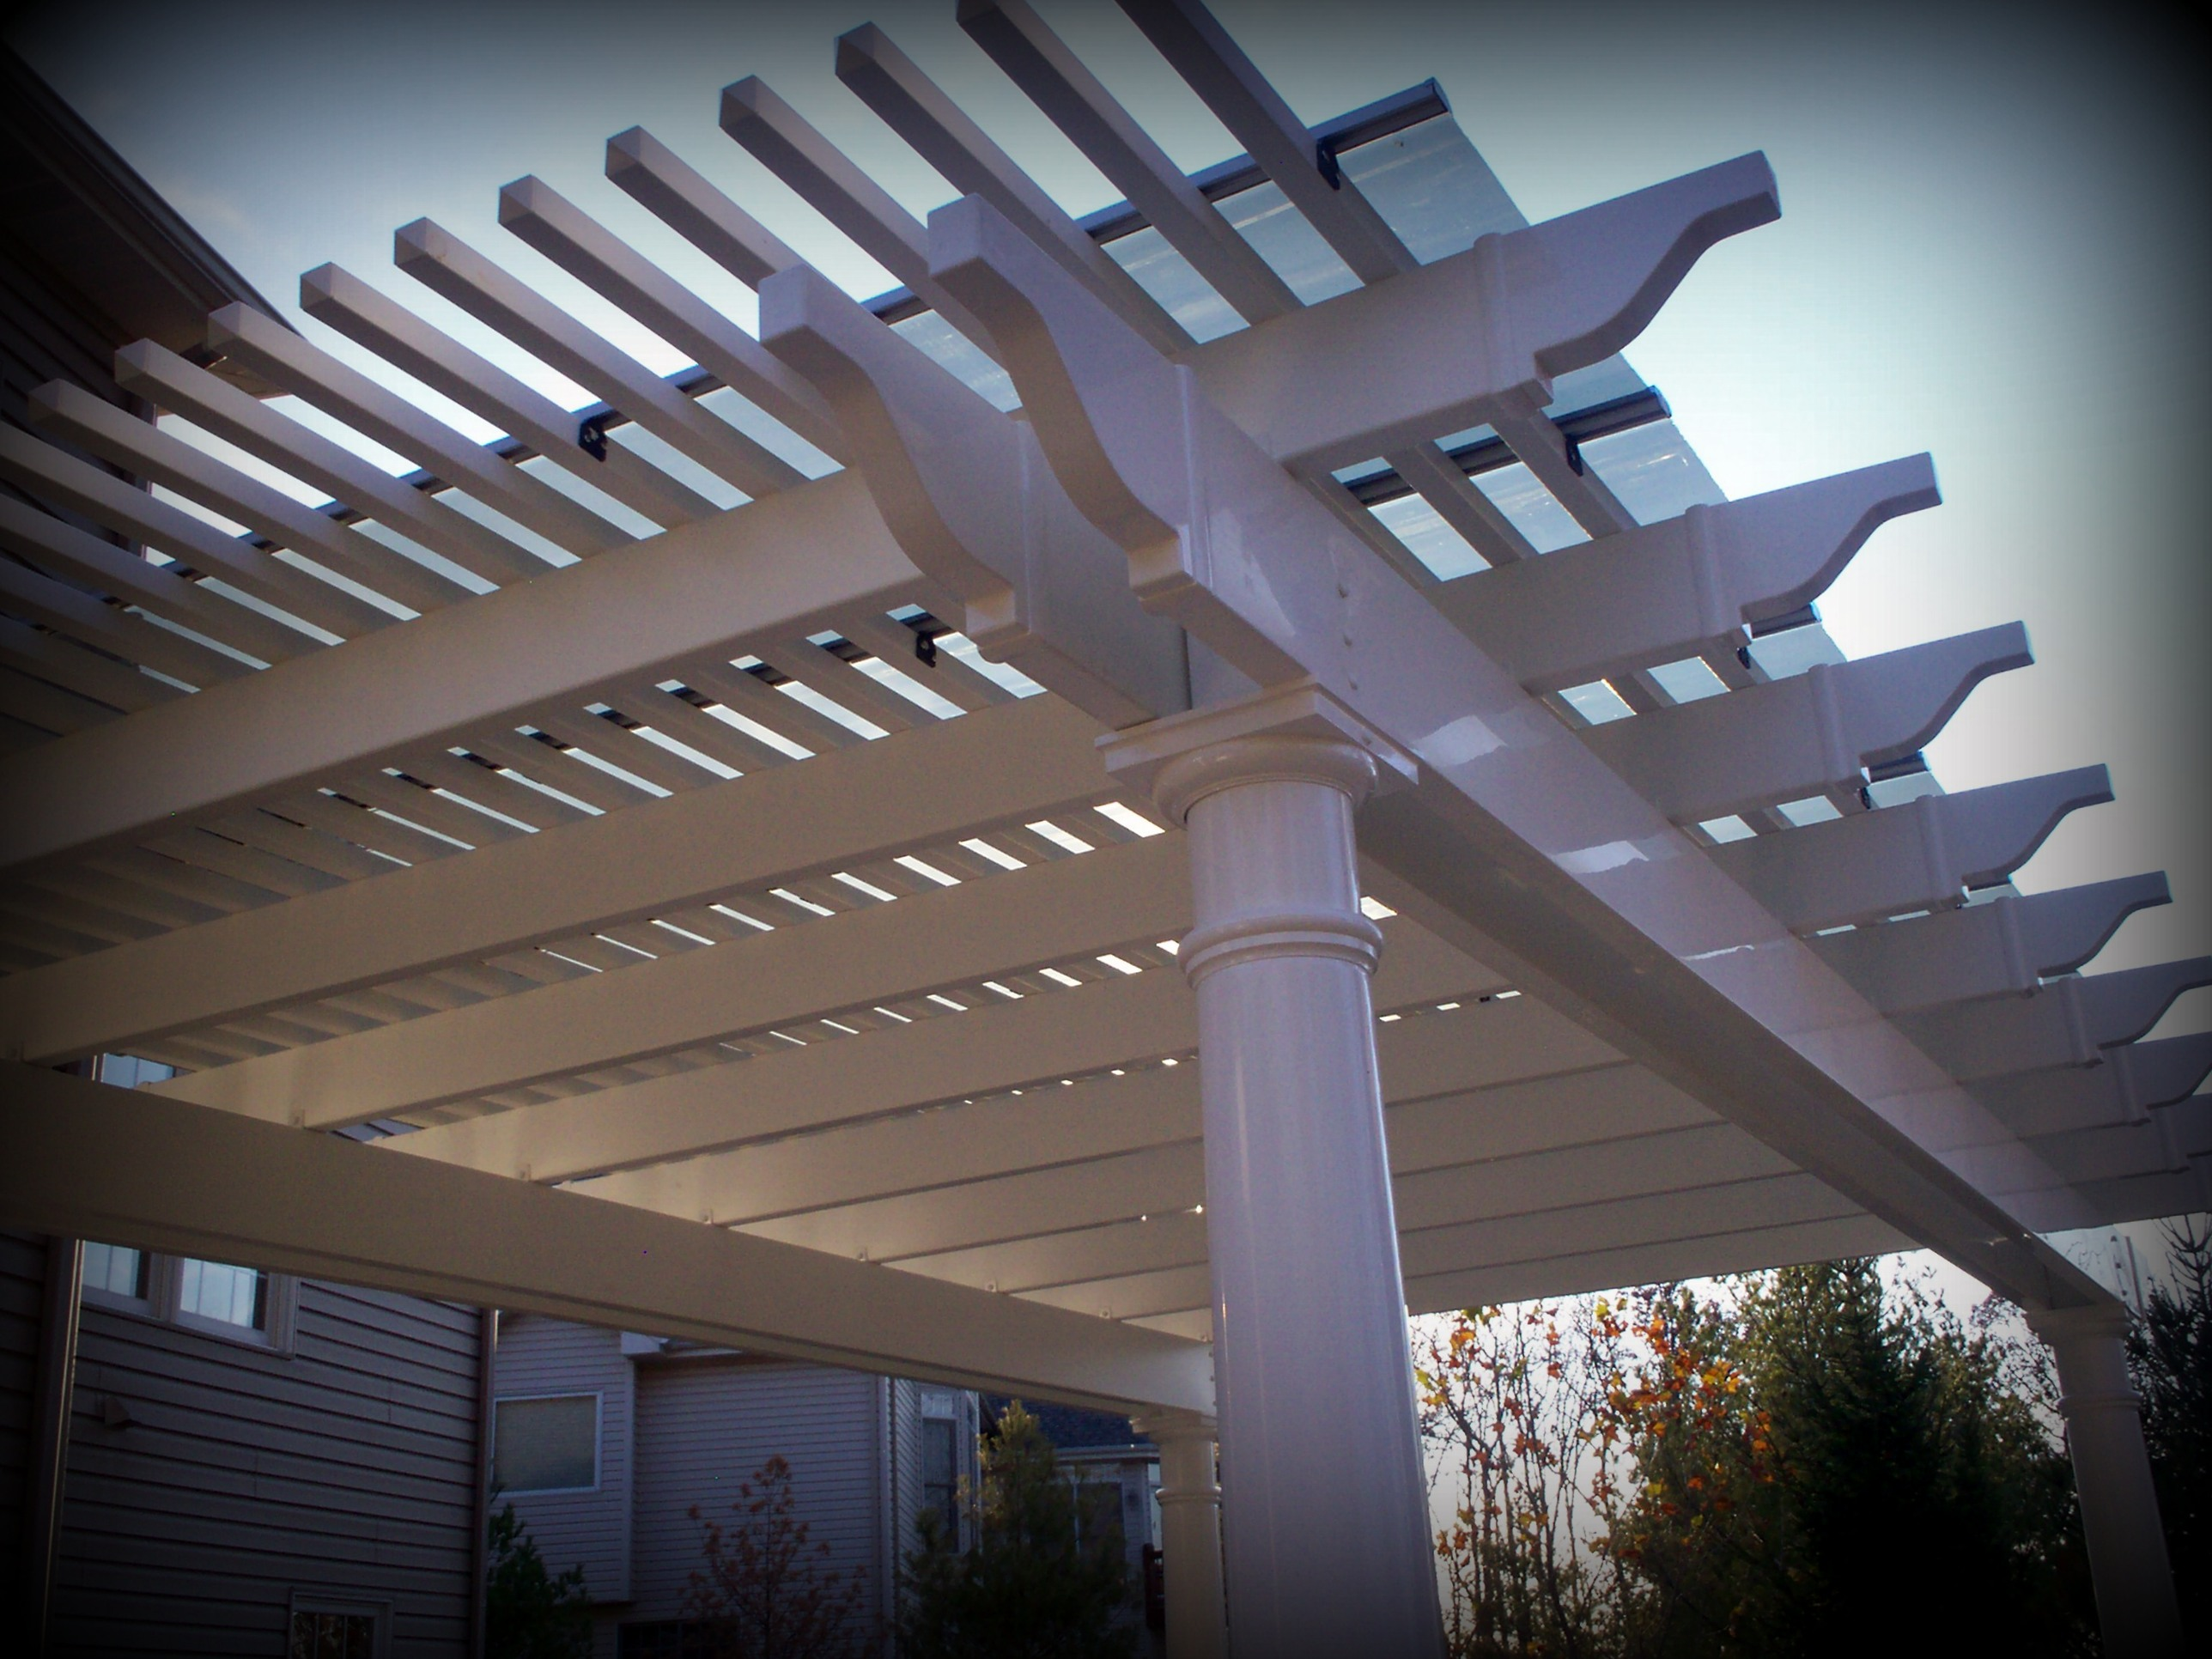 White Vinyl Shade Pergola for Patio Cover in St Louis Mo